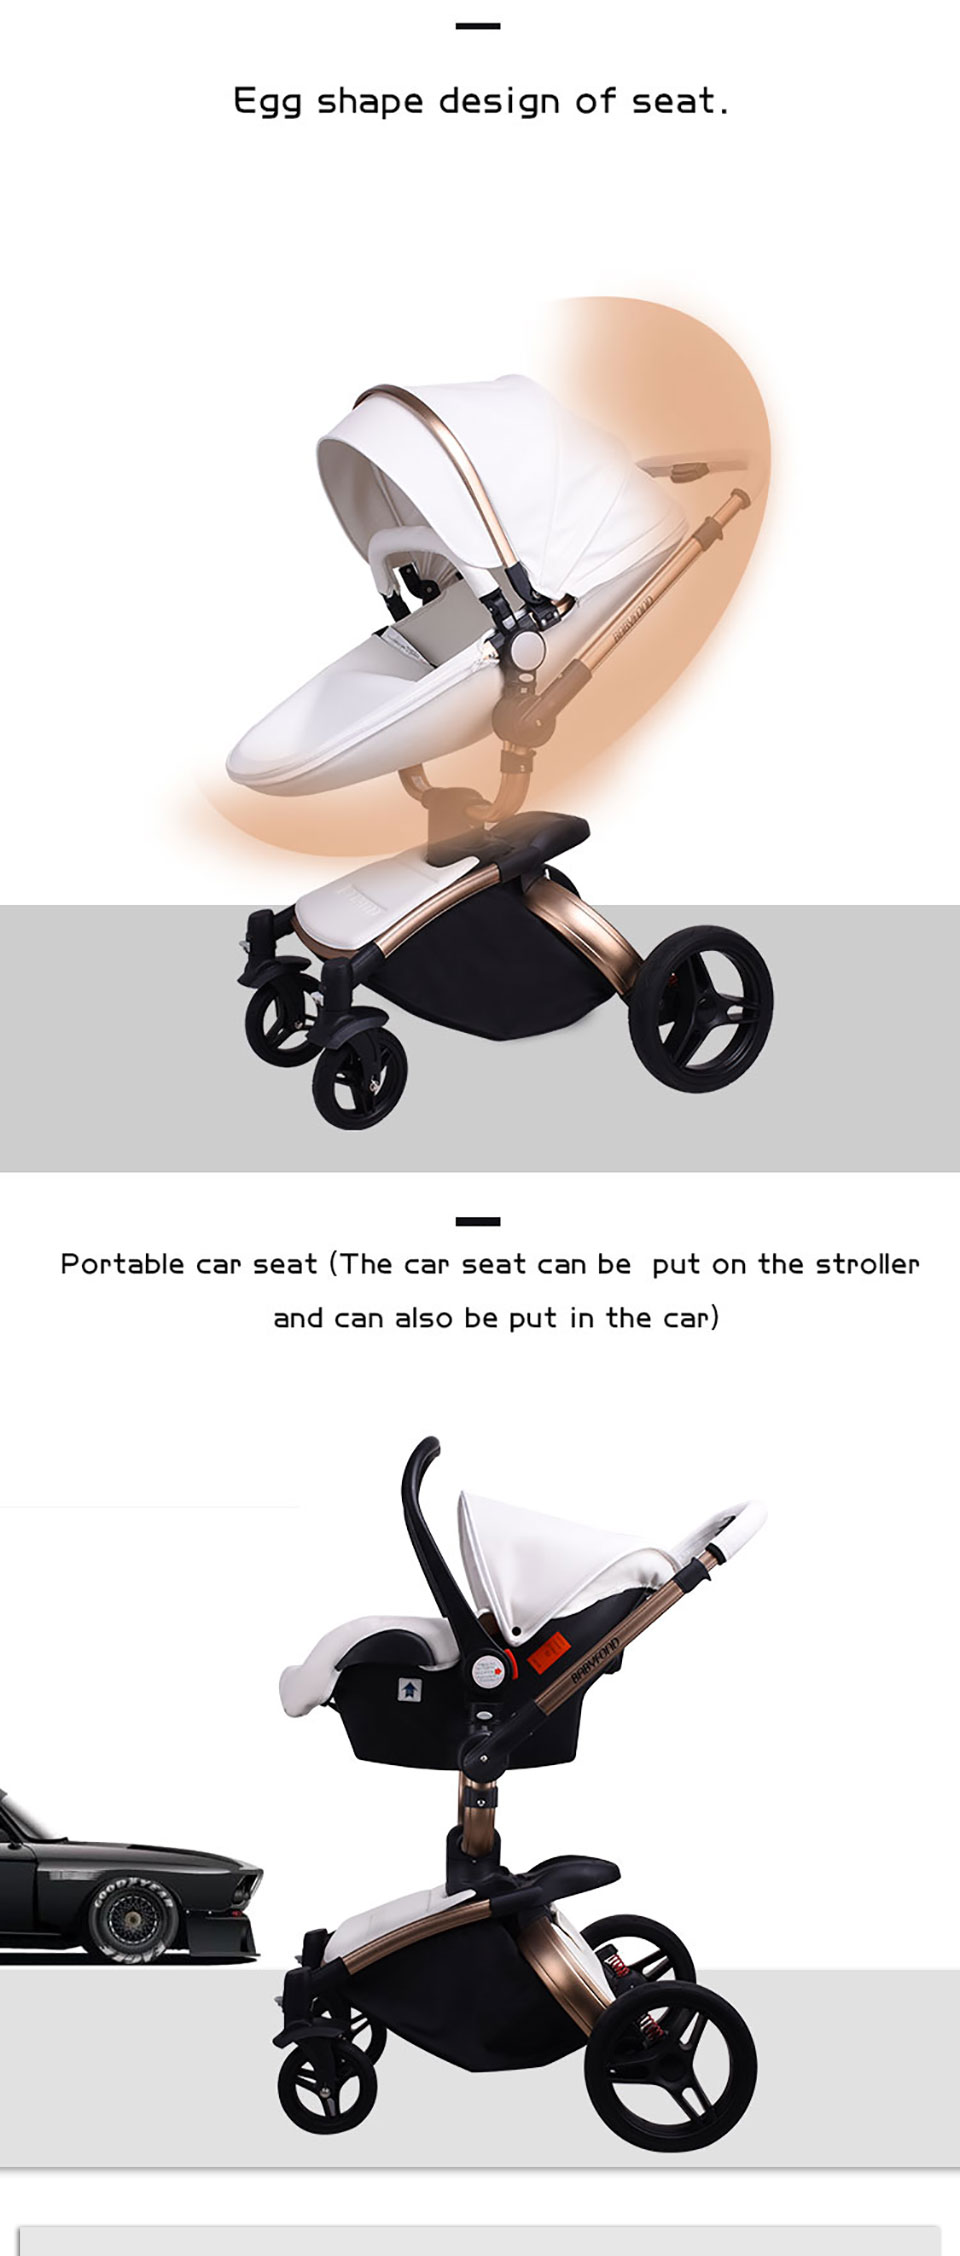 Egg Pram Replacement Wheels Details About 2019 Luxury Baby Stroller 3 In 1 High Landscape Pram Foldable Pushchair Car Seat